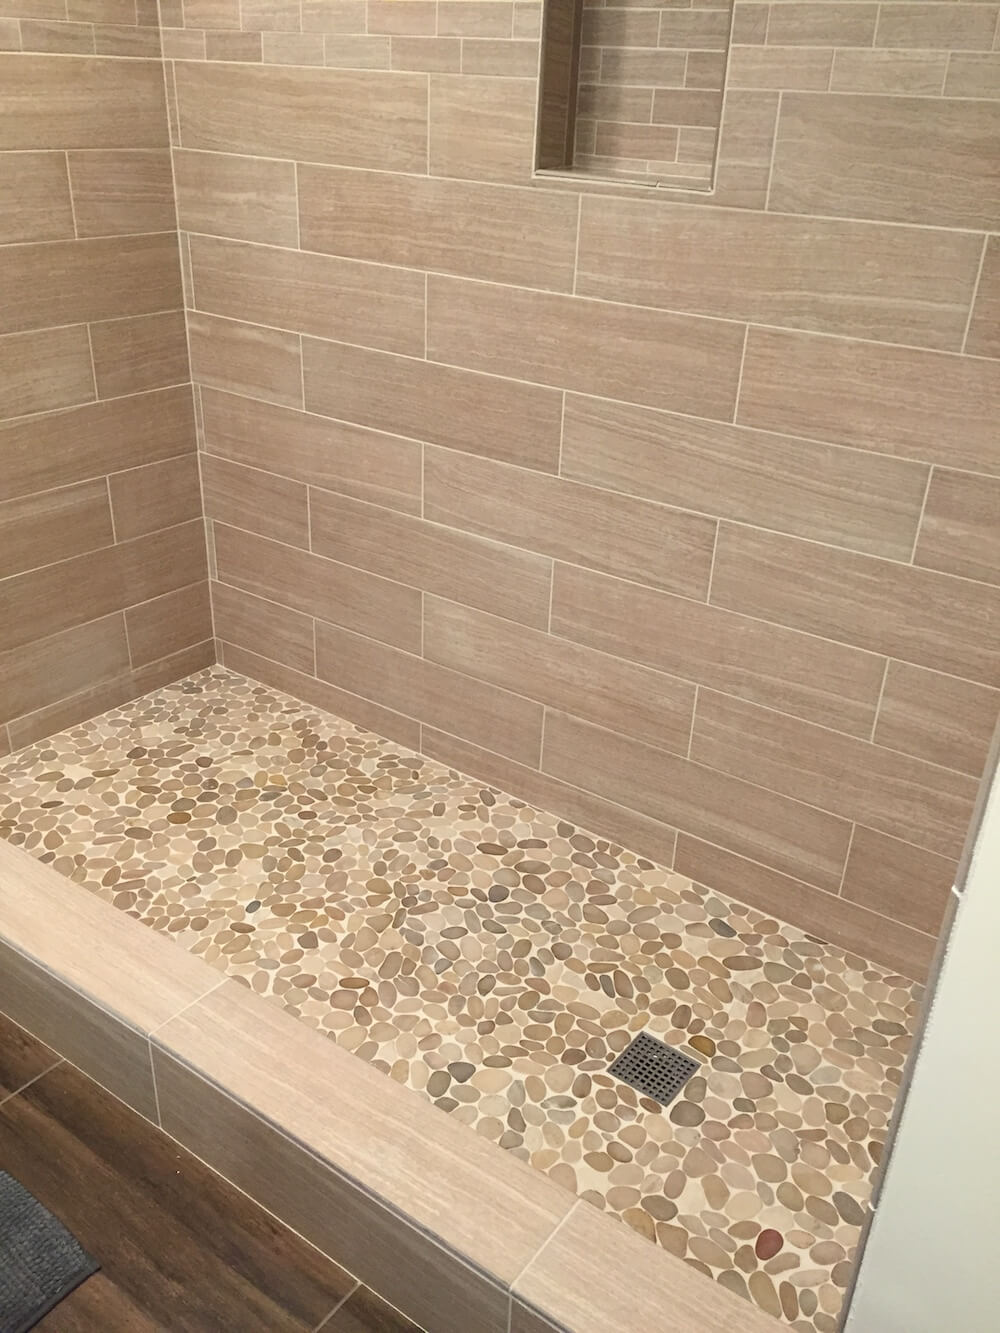 2018 cost to tile a shower how much to tile a shower showing tiling cost factors dailygadgetfo Choice Image